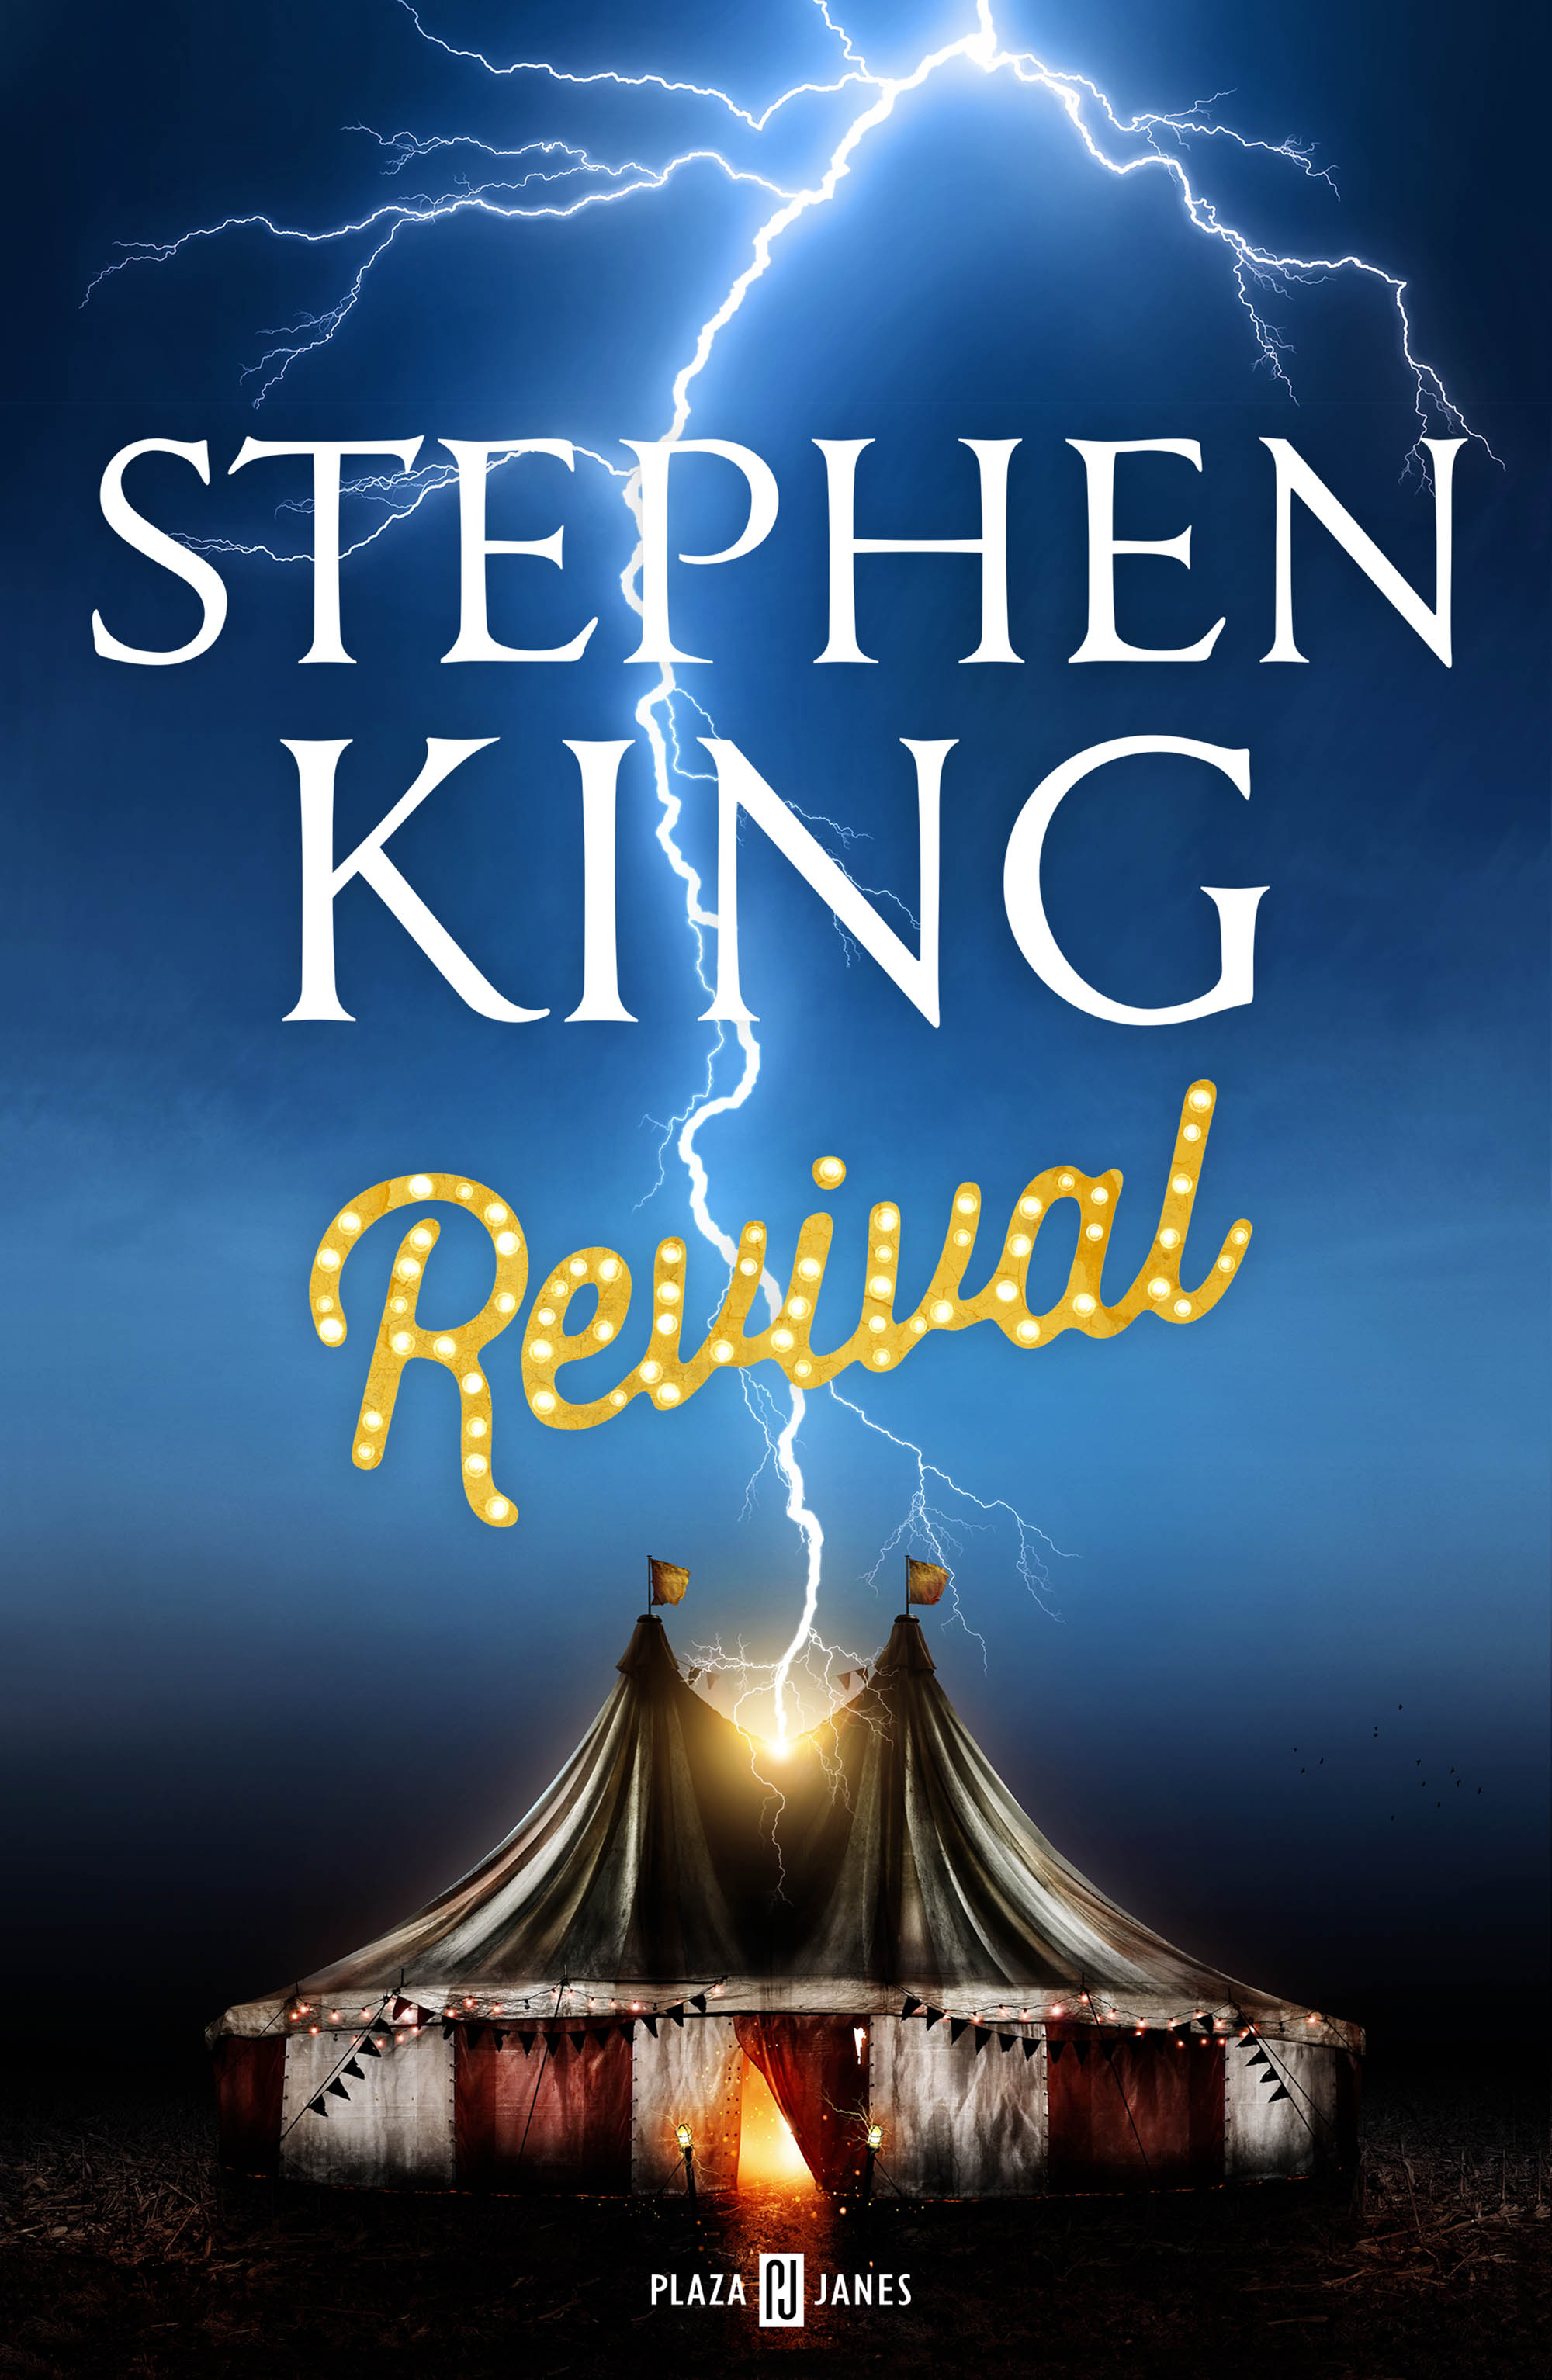 Revival - Stephen King Portada